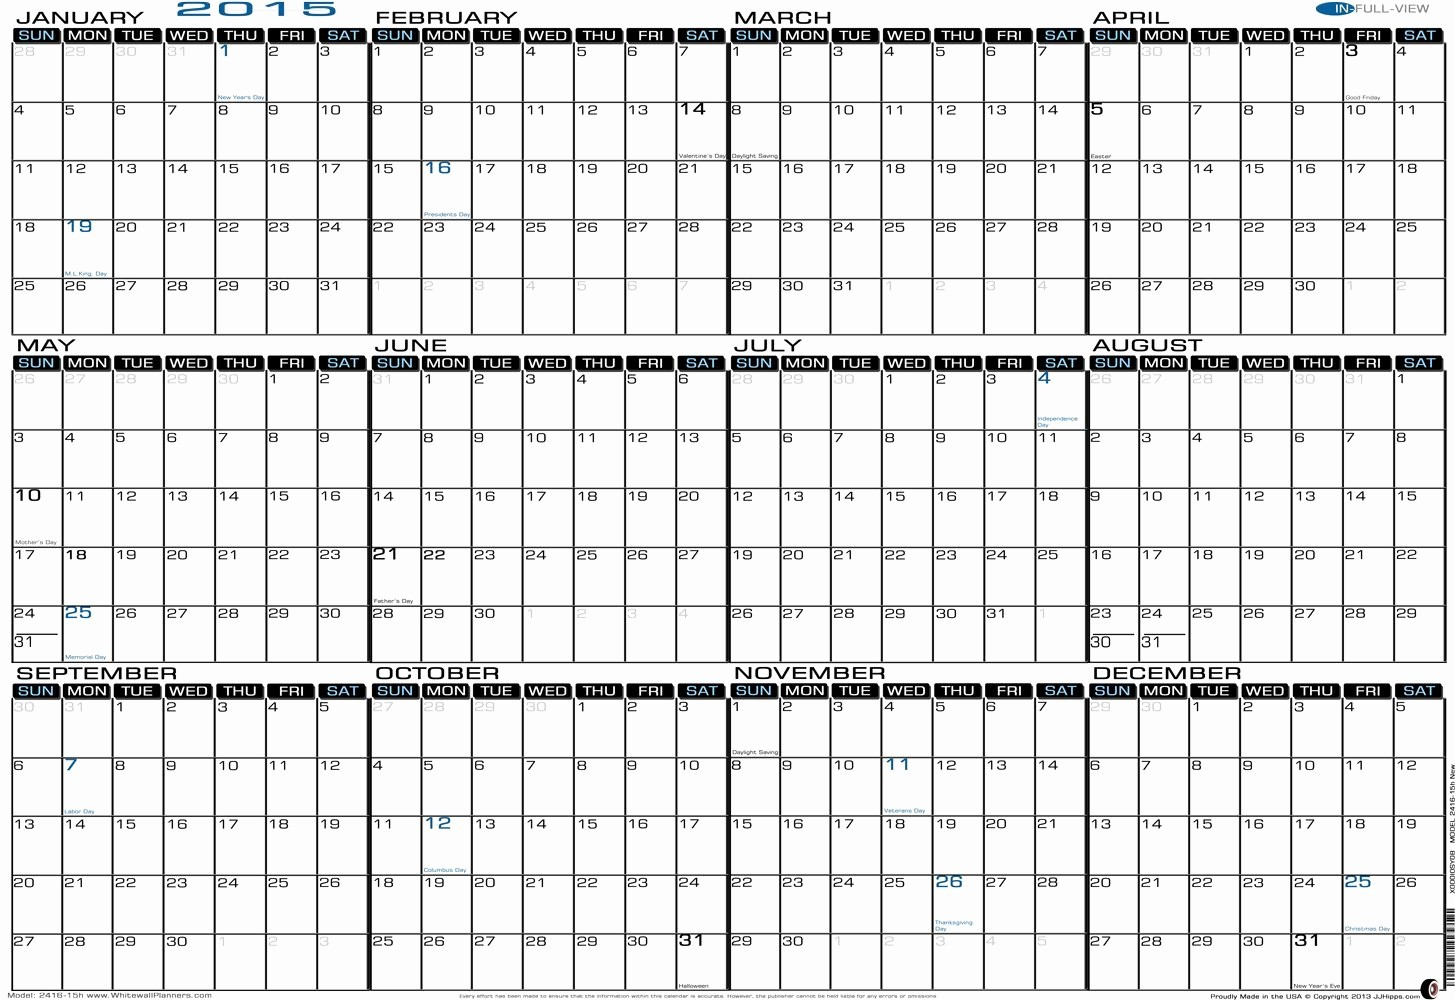 Free Printable Annual Calendar 2017 Luxury Free Printable Yearly Calendar 2015 – 2017 Printable Calendar